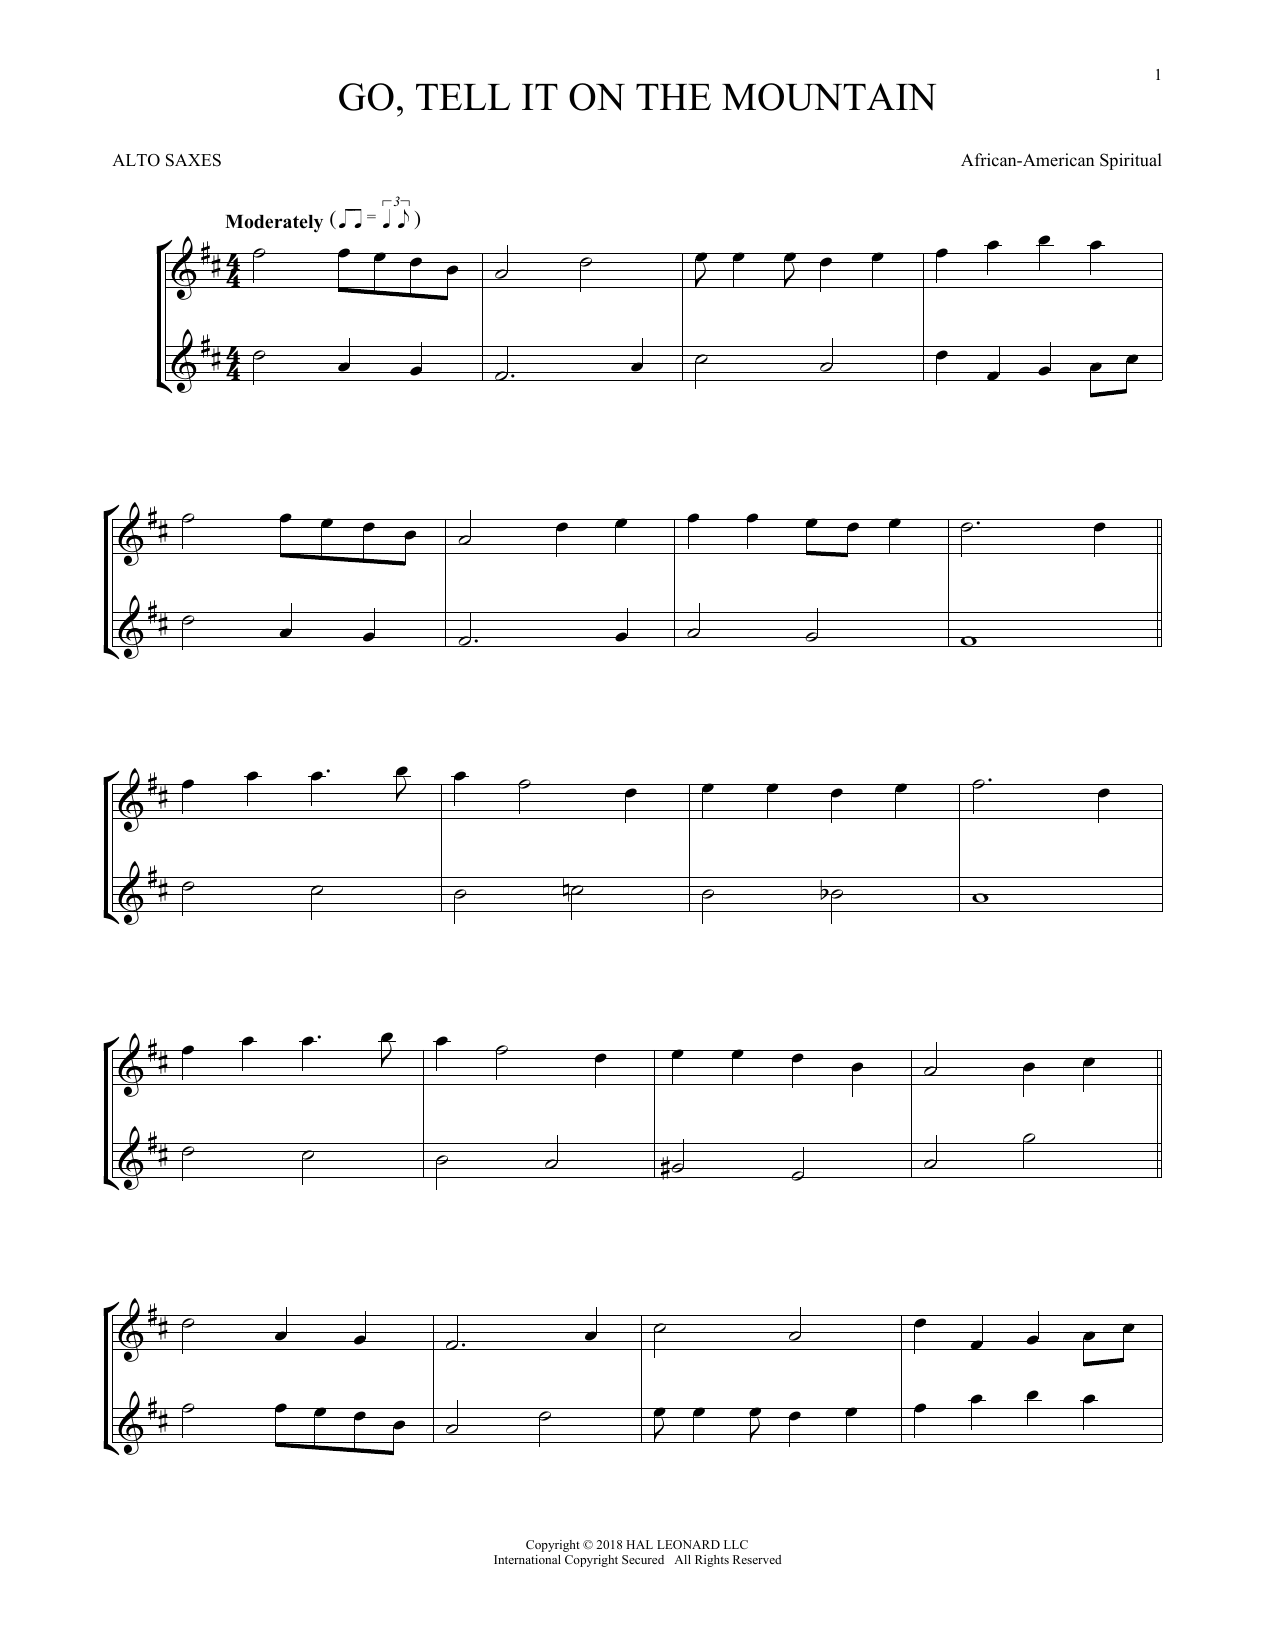 African-American Spiritual Go, Tell It On The Mountain sheet music preview music notes and score for Guitar Tab including 2 page(s)